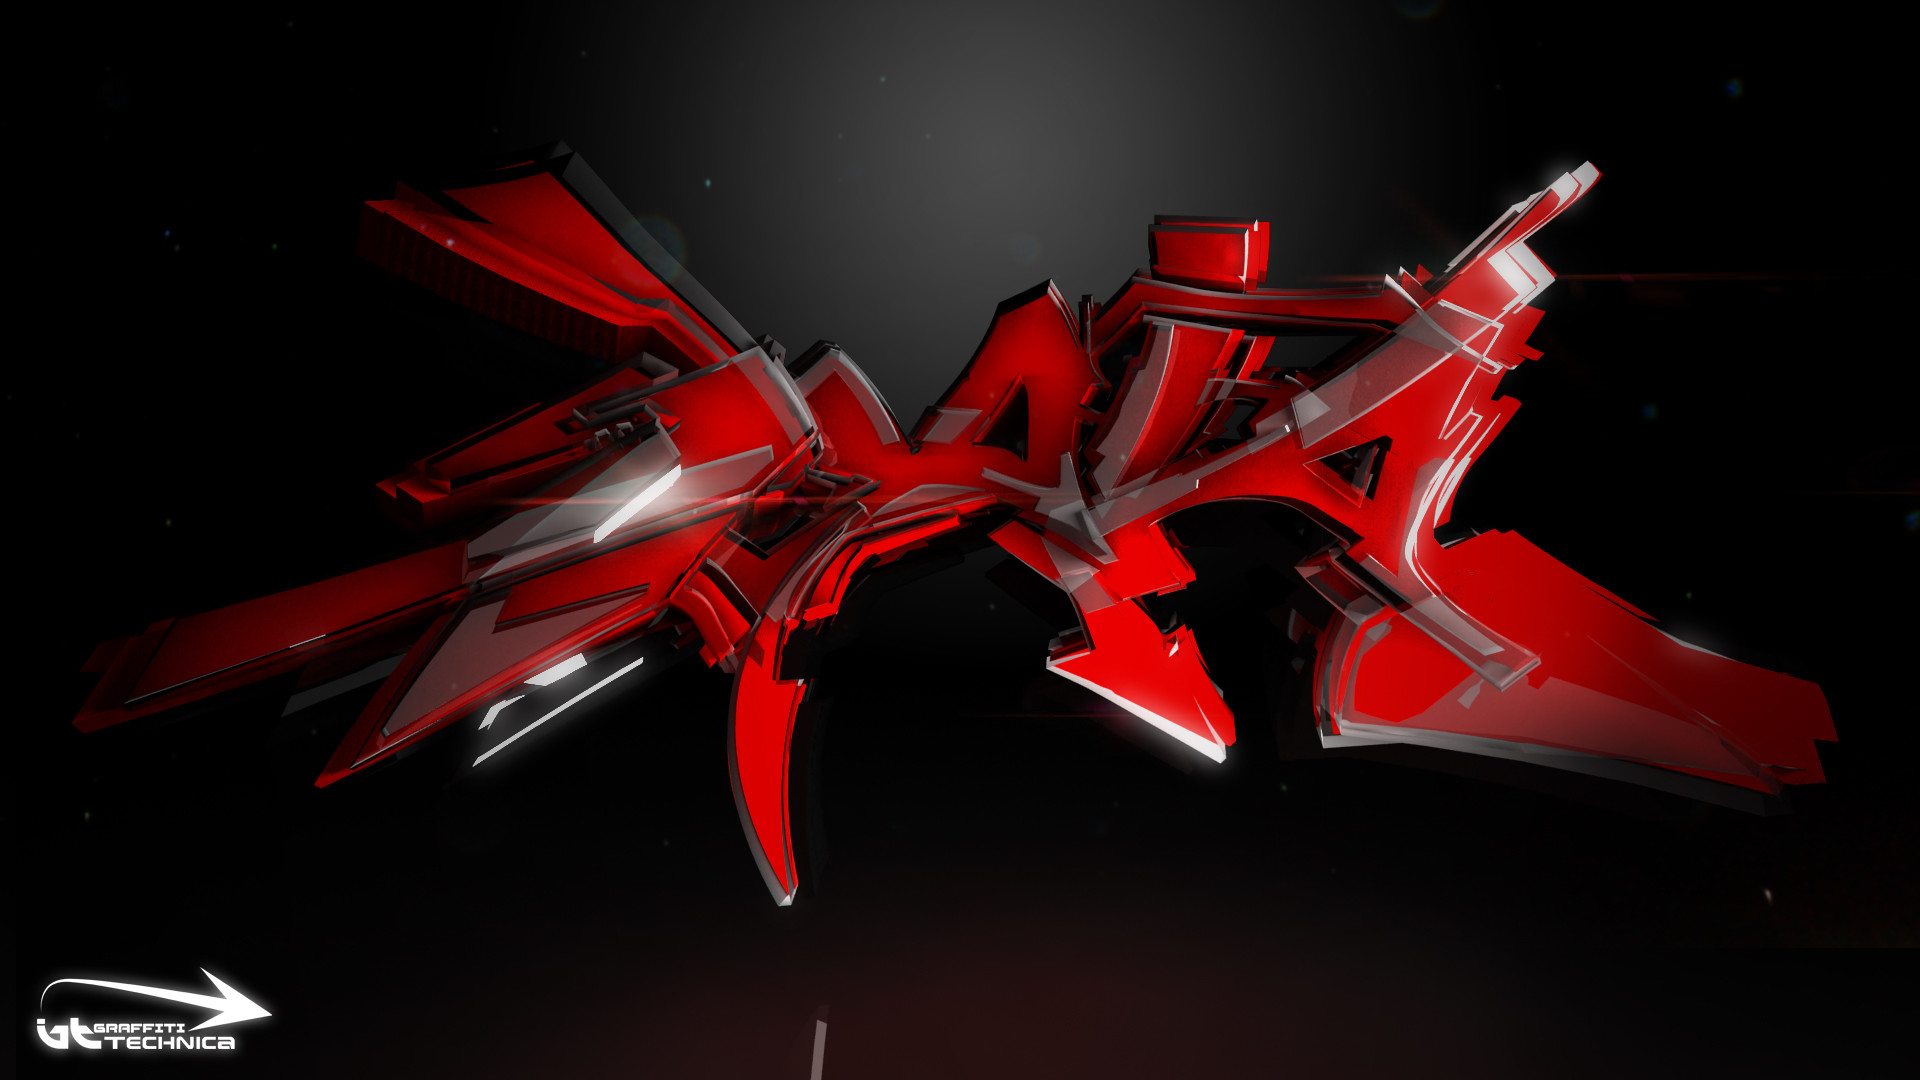 Red Graffiti Wallpaper 62 Images